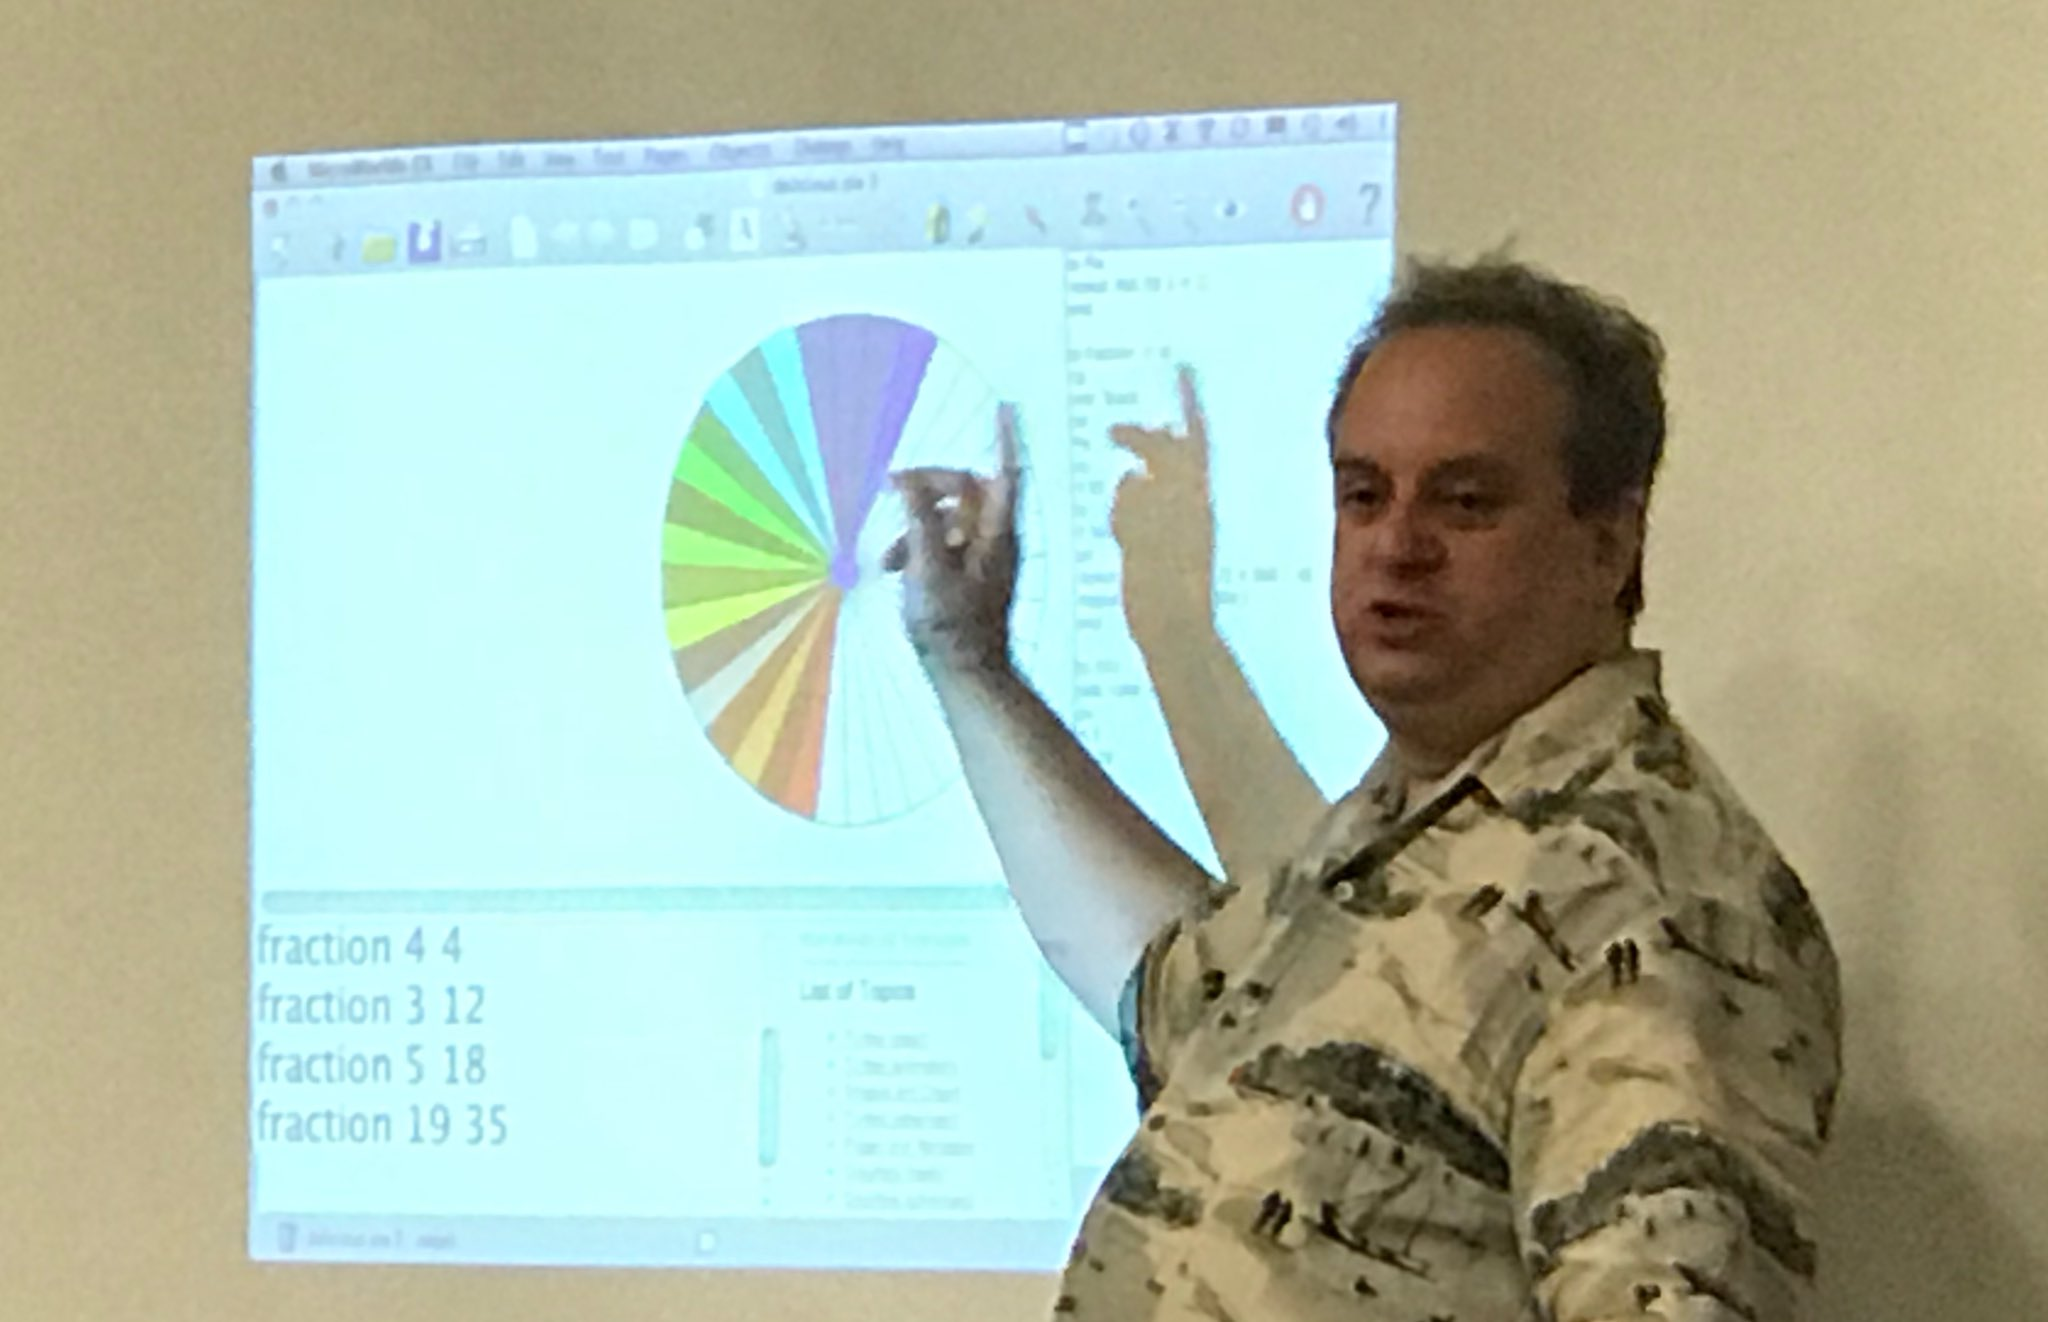 A better way to learn fractions: Students coded a program to draw a representation of any fraction in a circle @garystager at #SOTF2017 https://t.co/I27qJM7Tp6